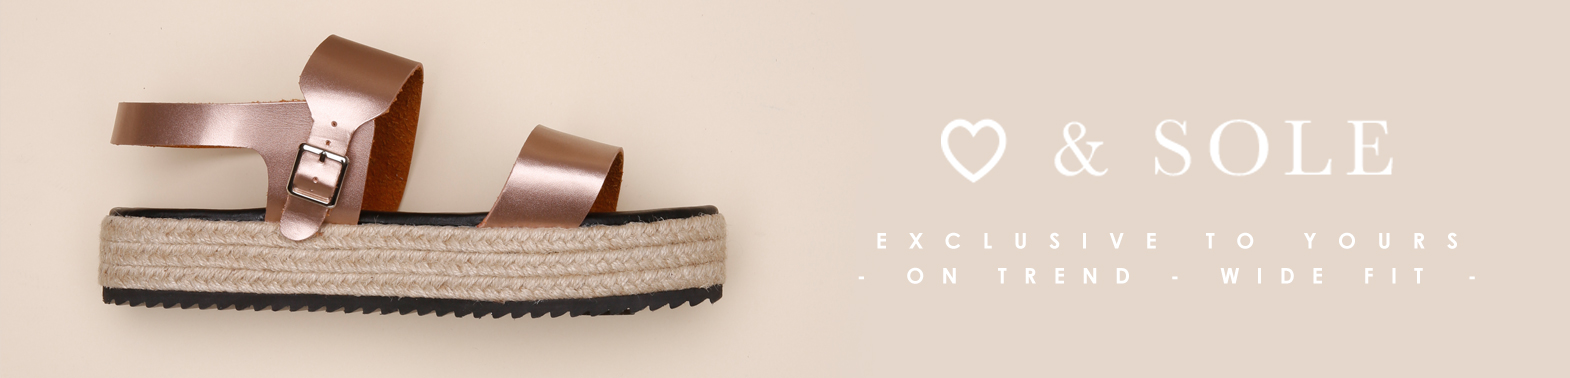 Heart & Sole Exclusive to Yours, On Trend Wider Fitting Shoes >